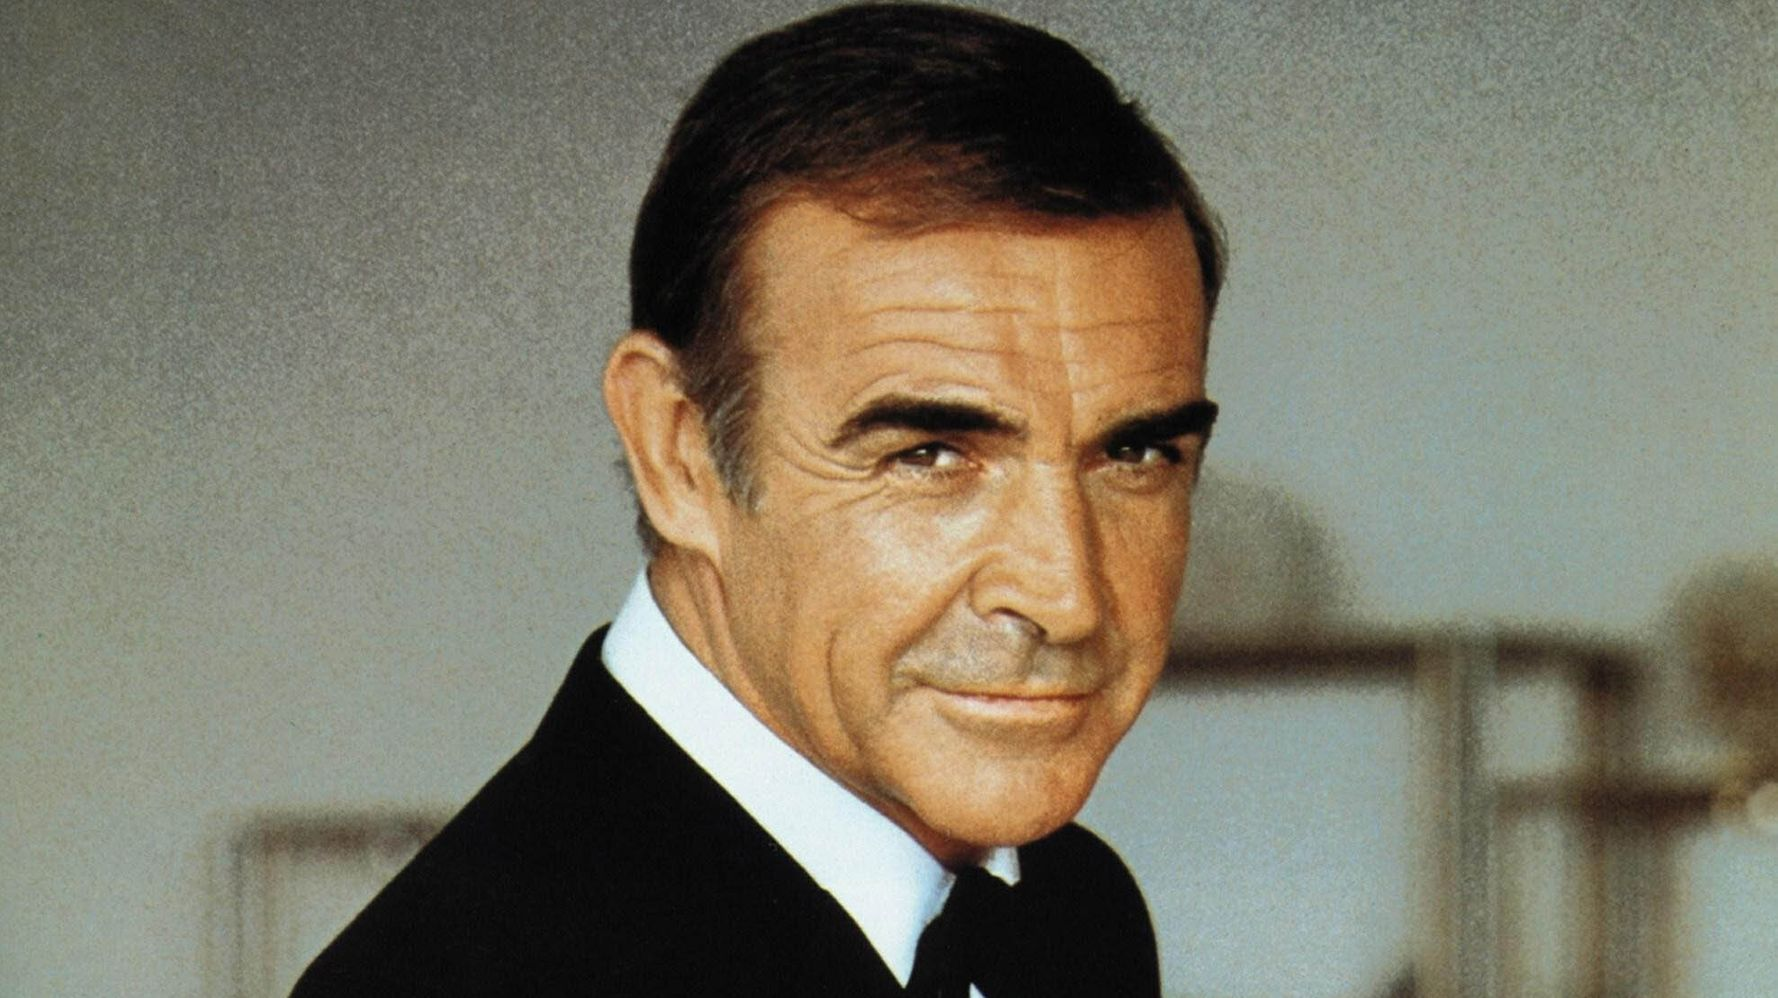 'A Trailblazer And A Gentleman': Entertainment World Remembers Sean Connery Following His Death, Aged 90